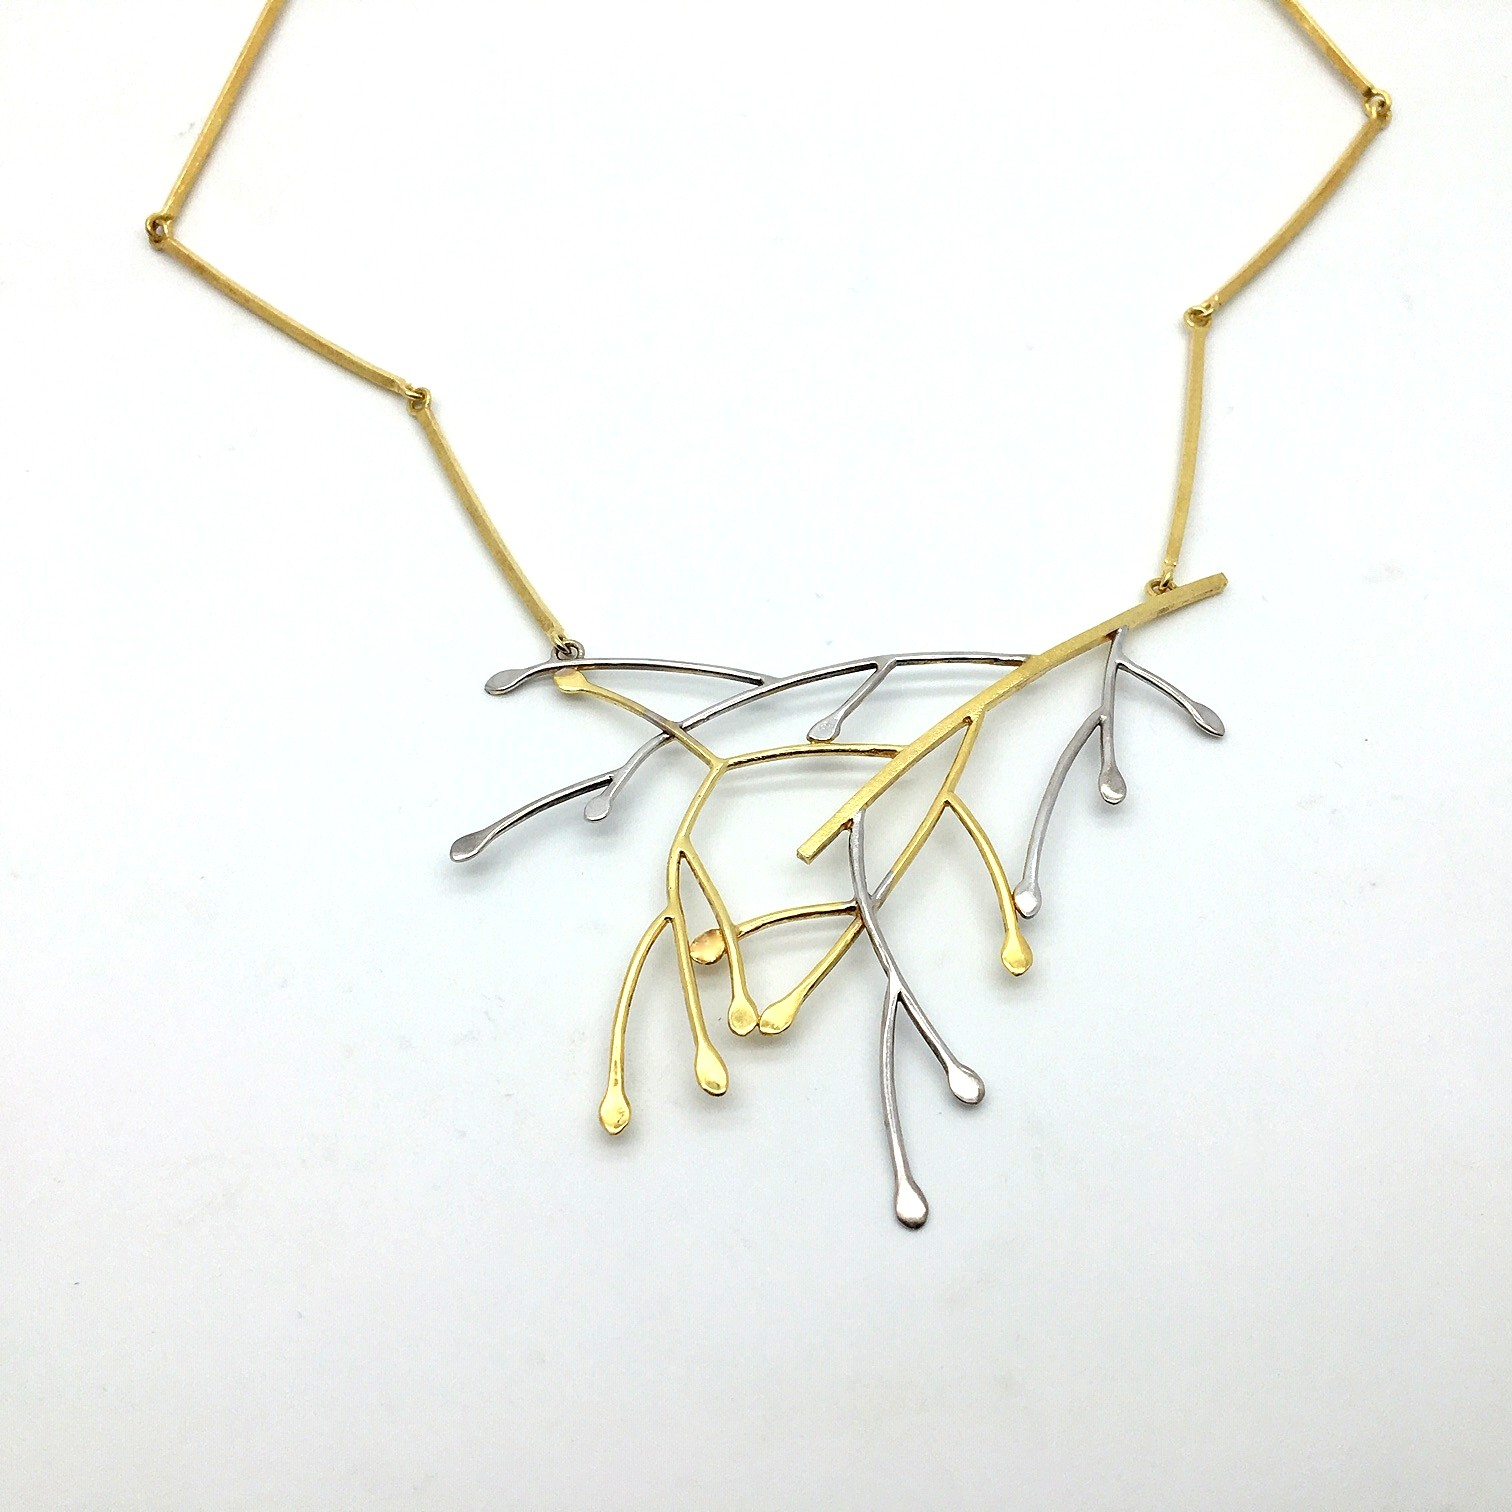 Silver necklace 925 rhodium and gold plated with synthetic stones